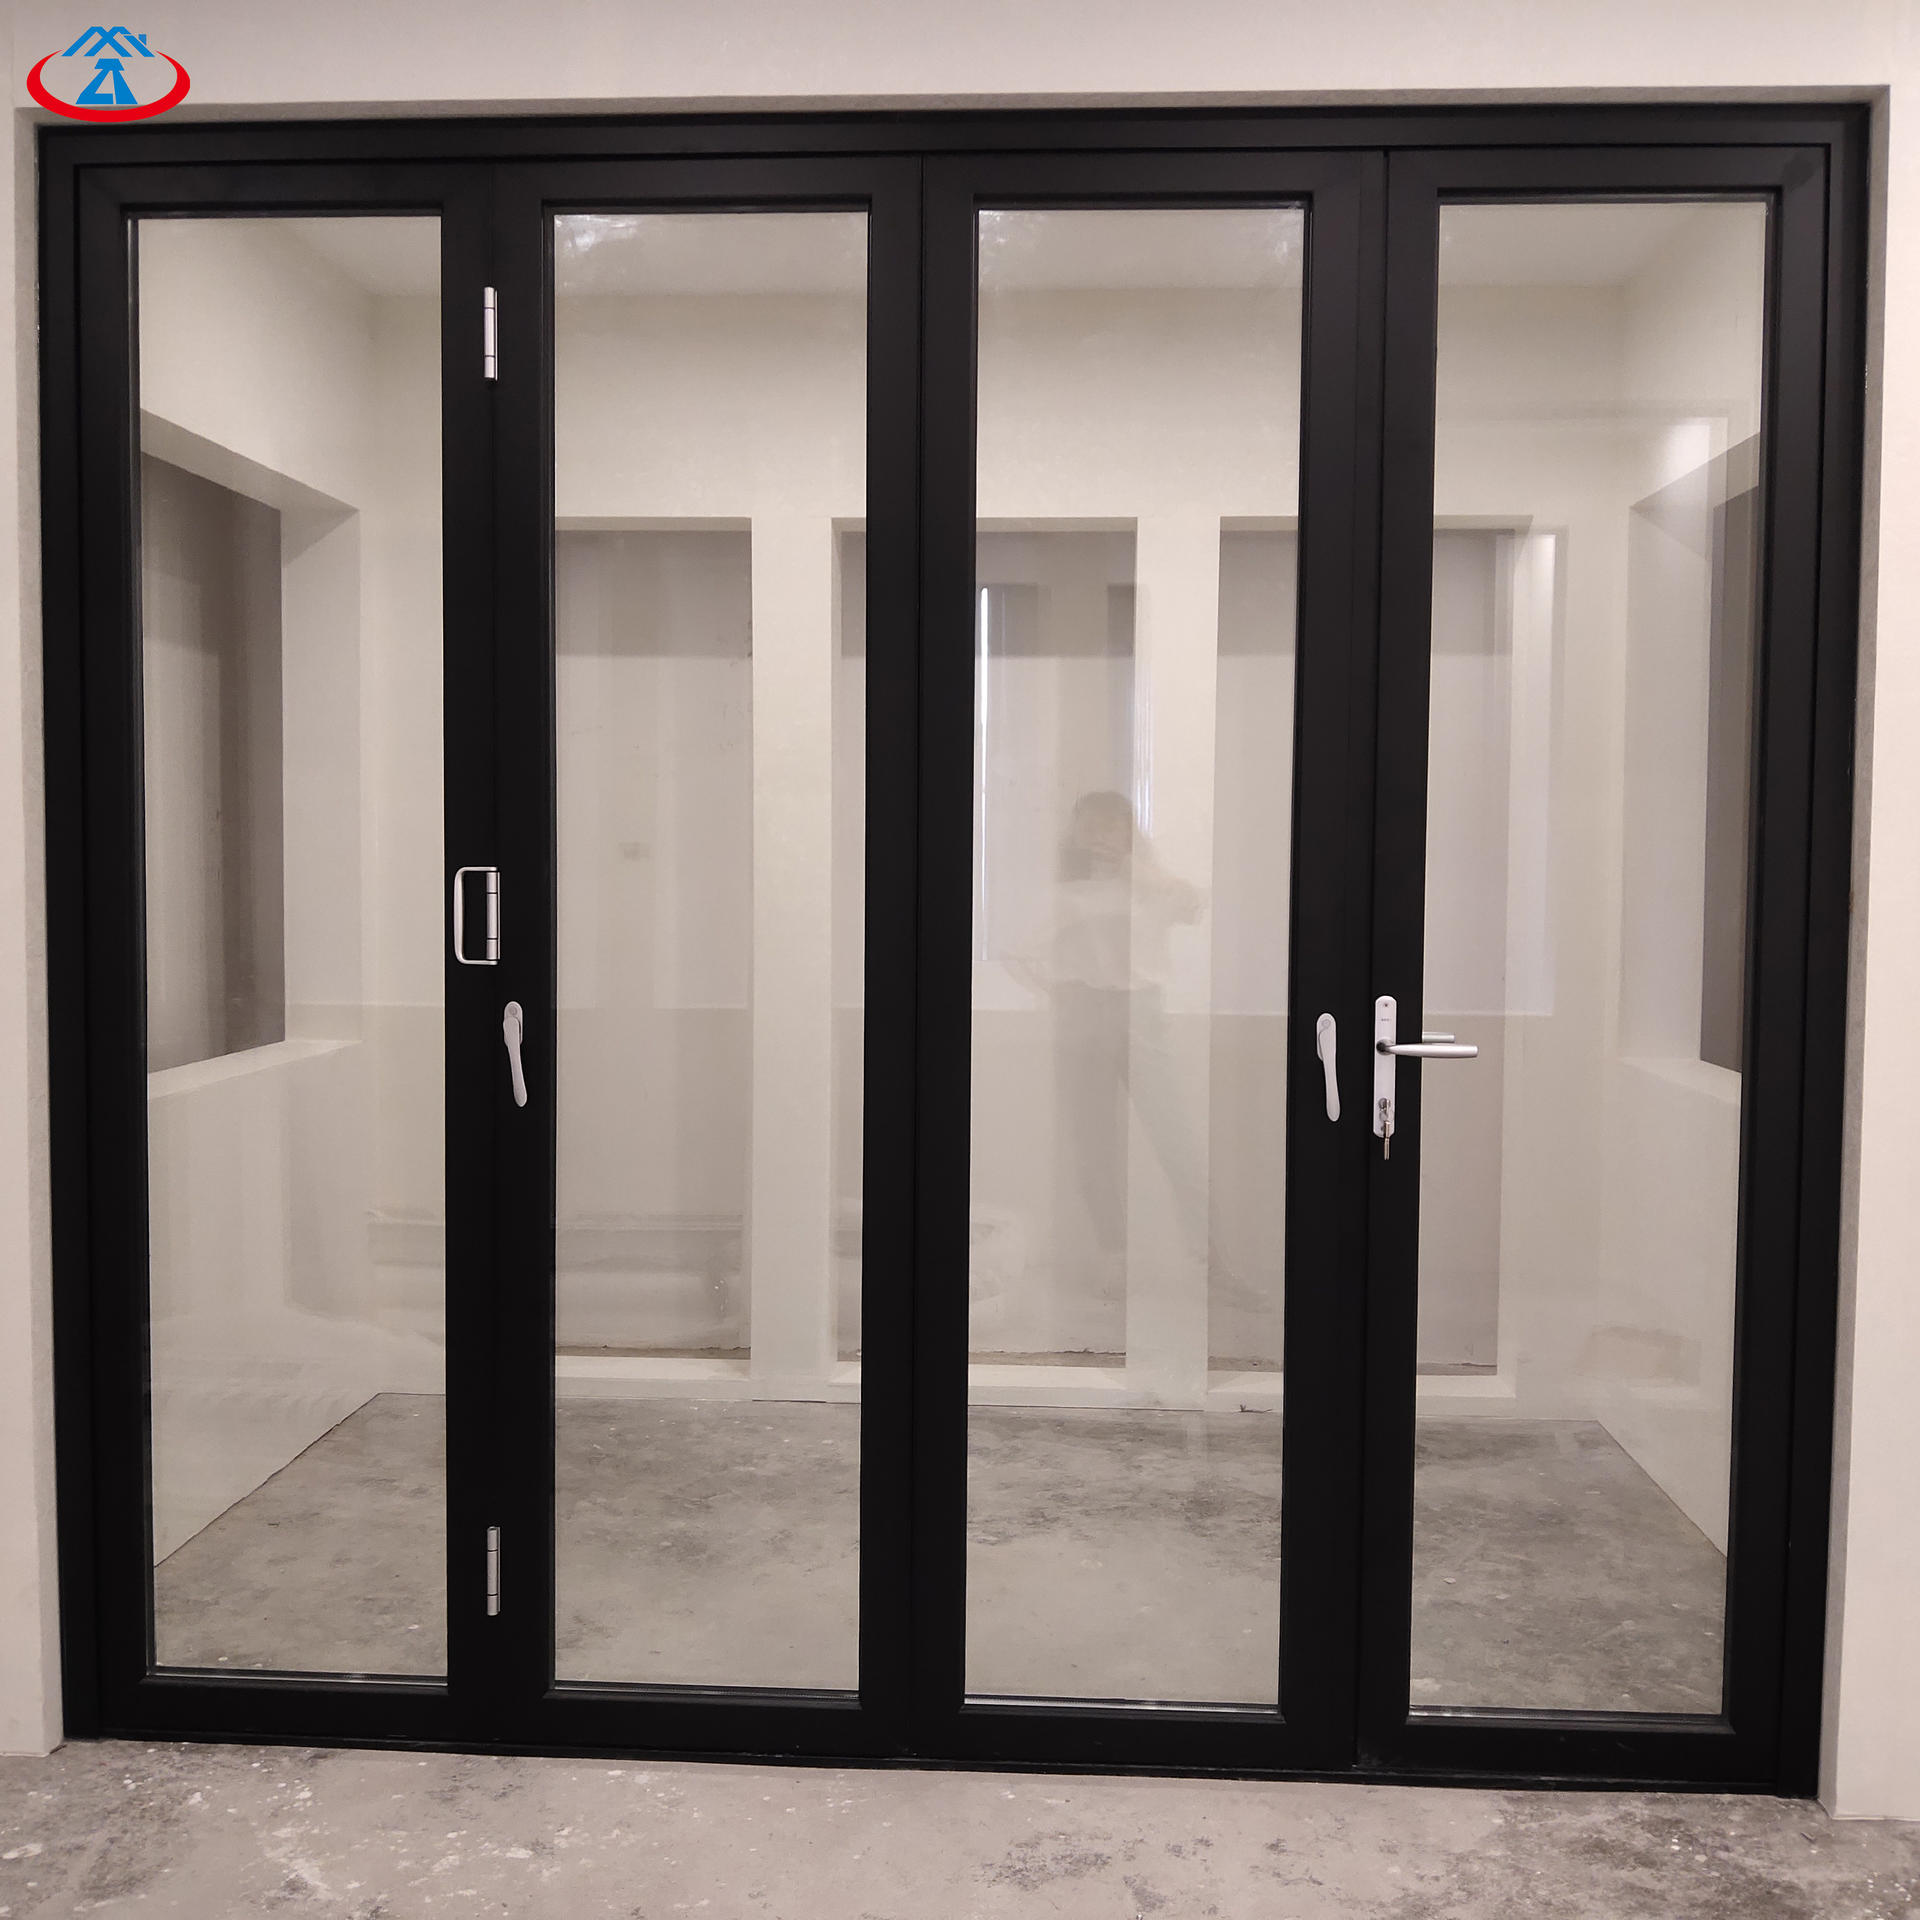 Black 4880mmW*2440mmH Double Tempered Glass Aluminum Frame Thermal Insulation Folding Door